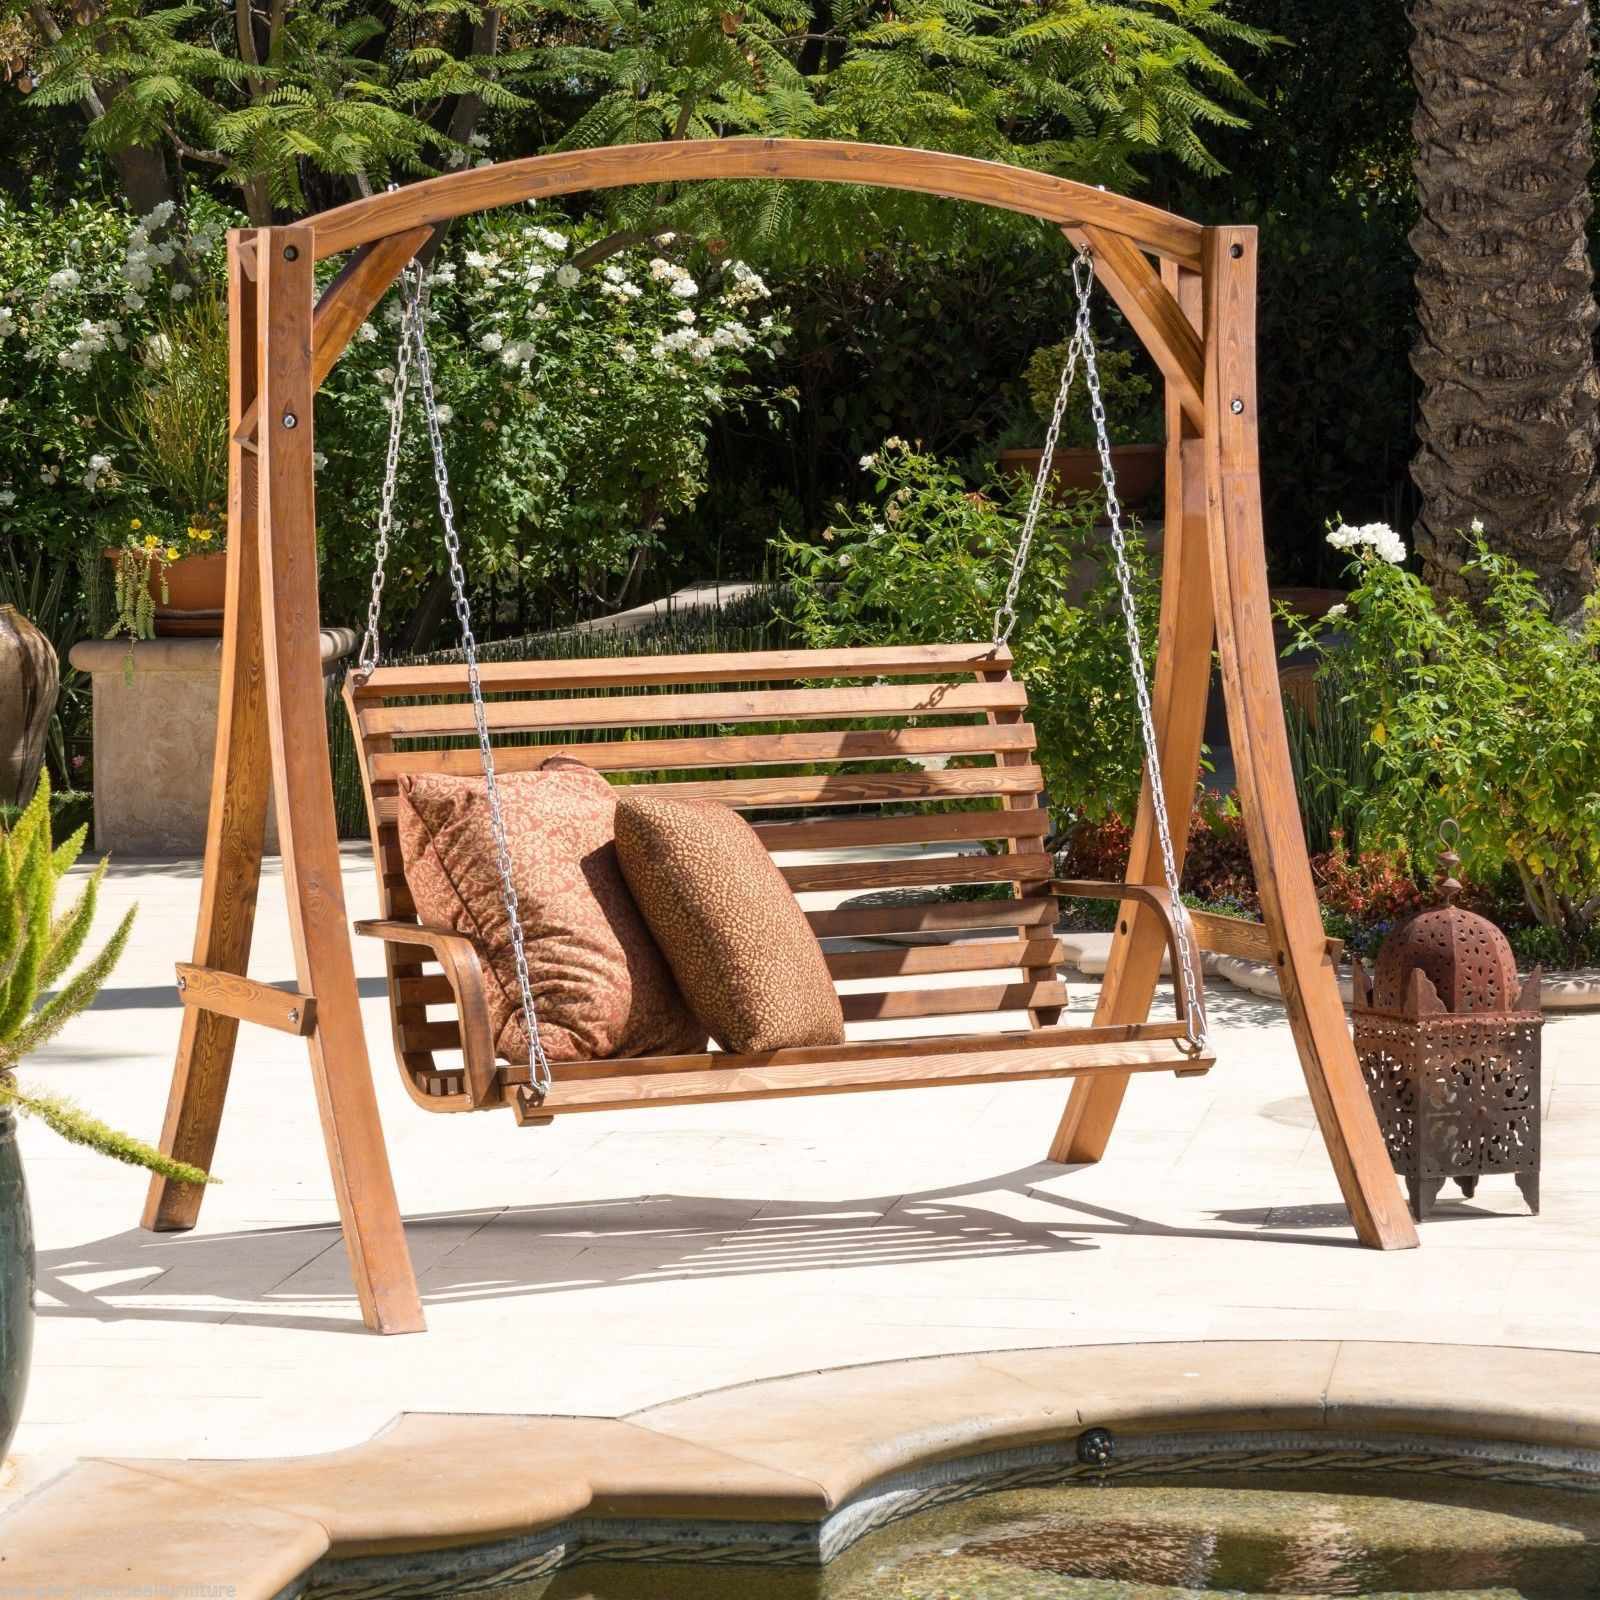 Stained Wood Patio Swing Set 2 Seater Thepatiodepot Usa